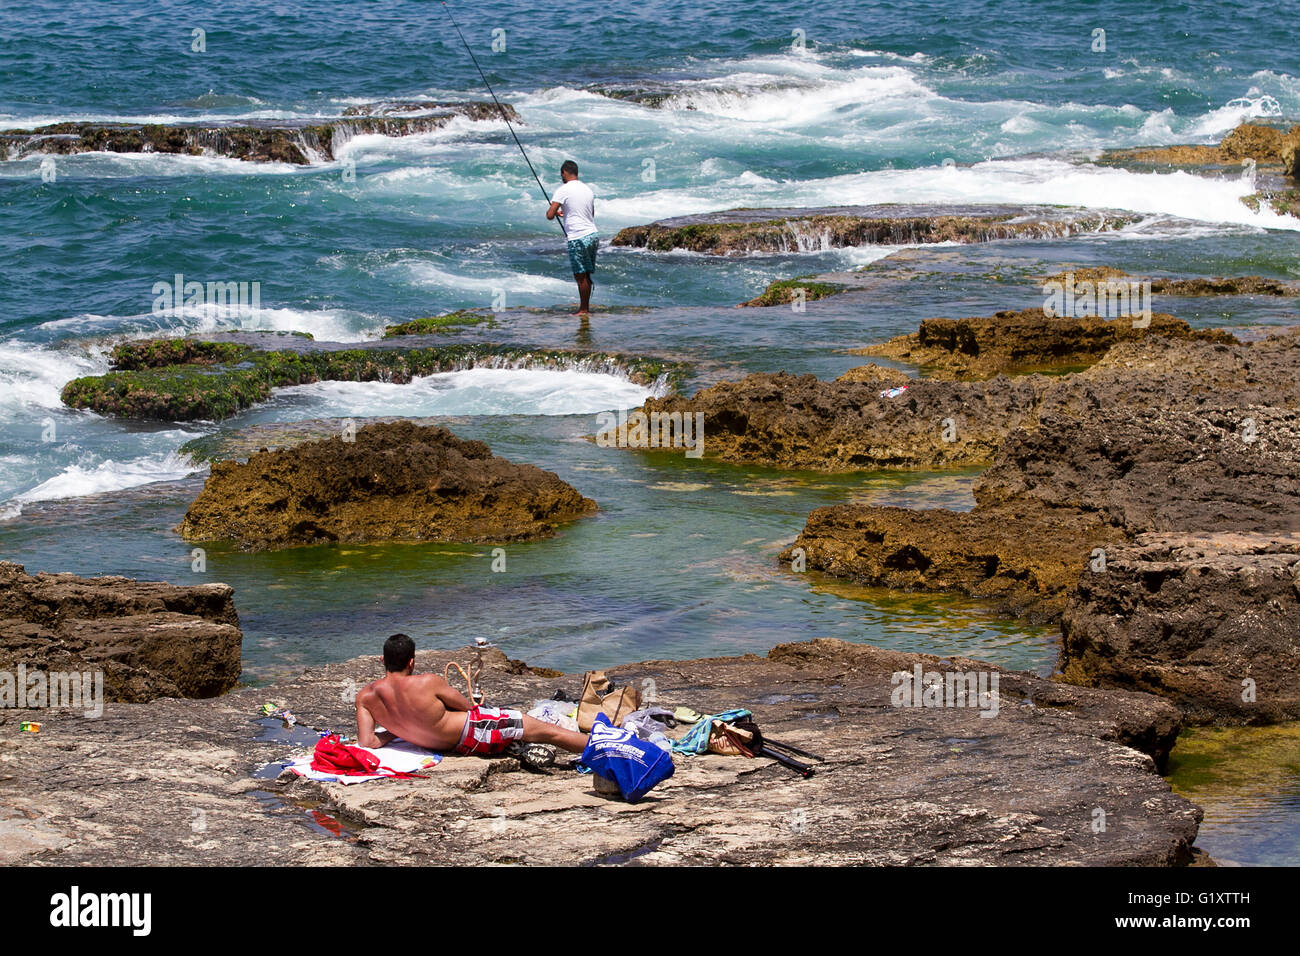 Beirut Lebanon, 20th May 2016. A sunbather enjoys the sun on the seafront rocks as Beirut swelters in high temperatures - Stock Image